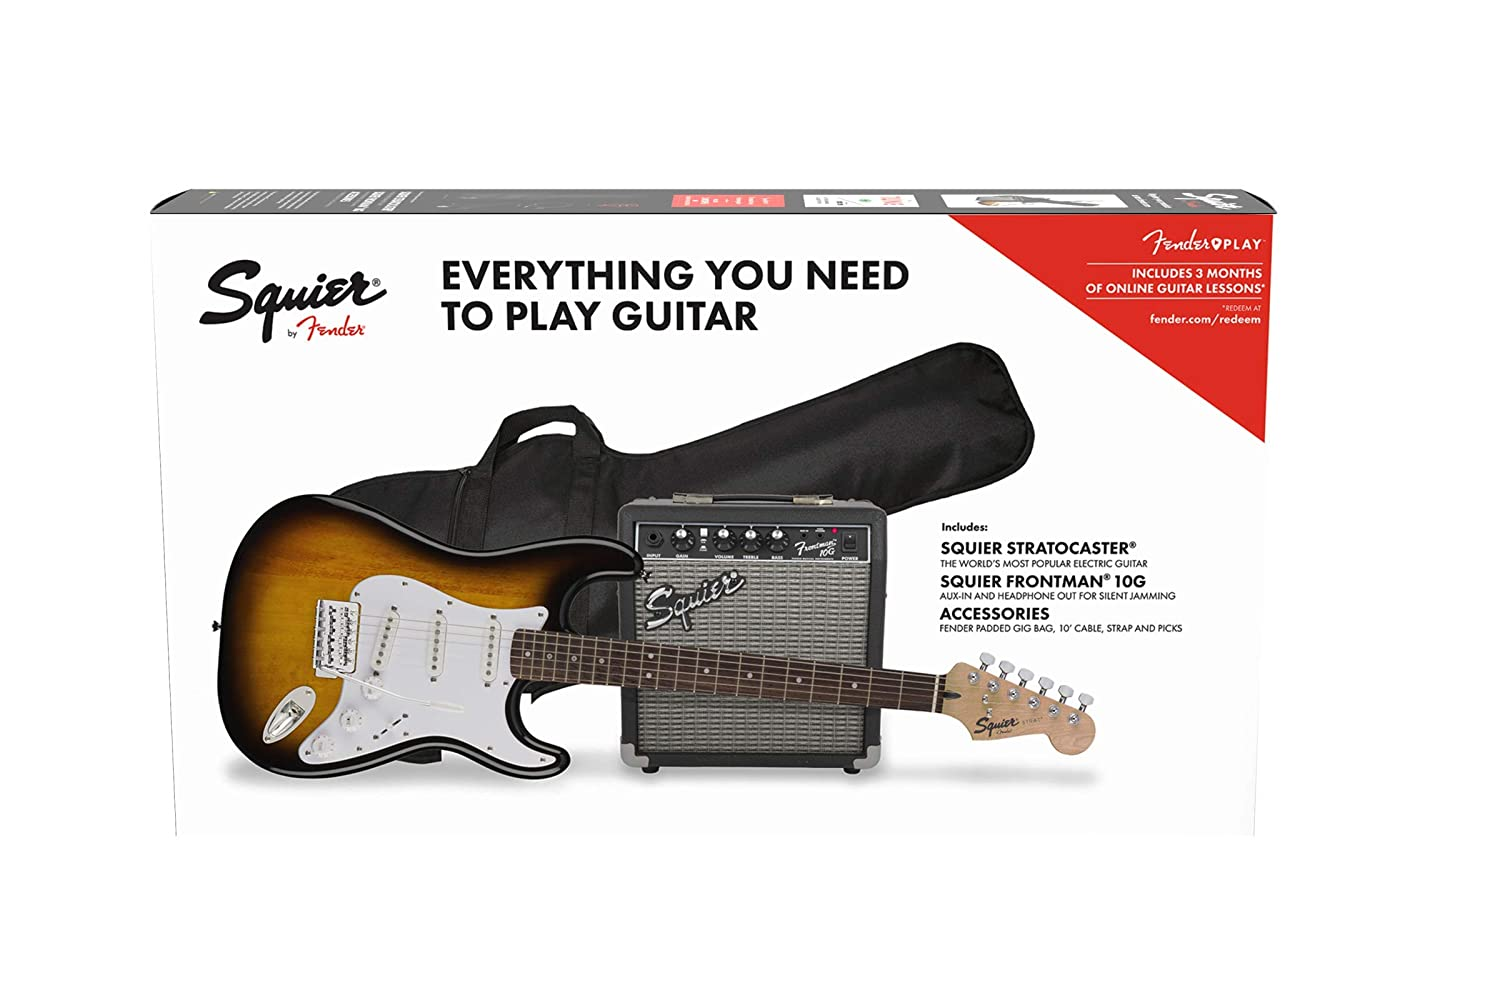 Fender Stratocaster Pack SSS Brown Sunburst + Frontman 10G + Funda + Accesorios: Amazon.es: Electrónica